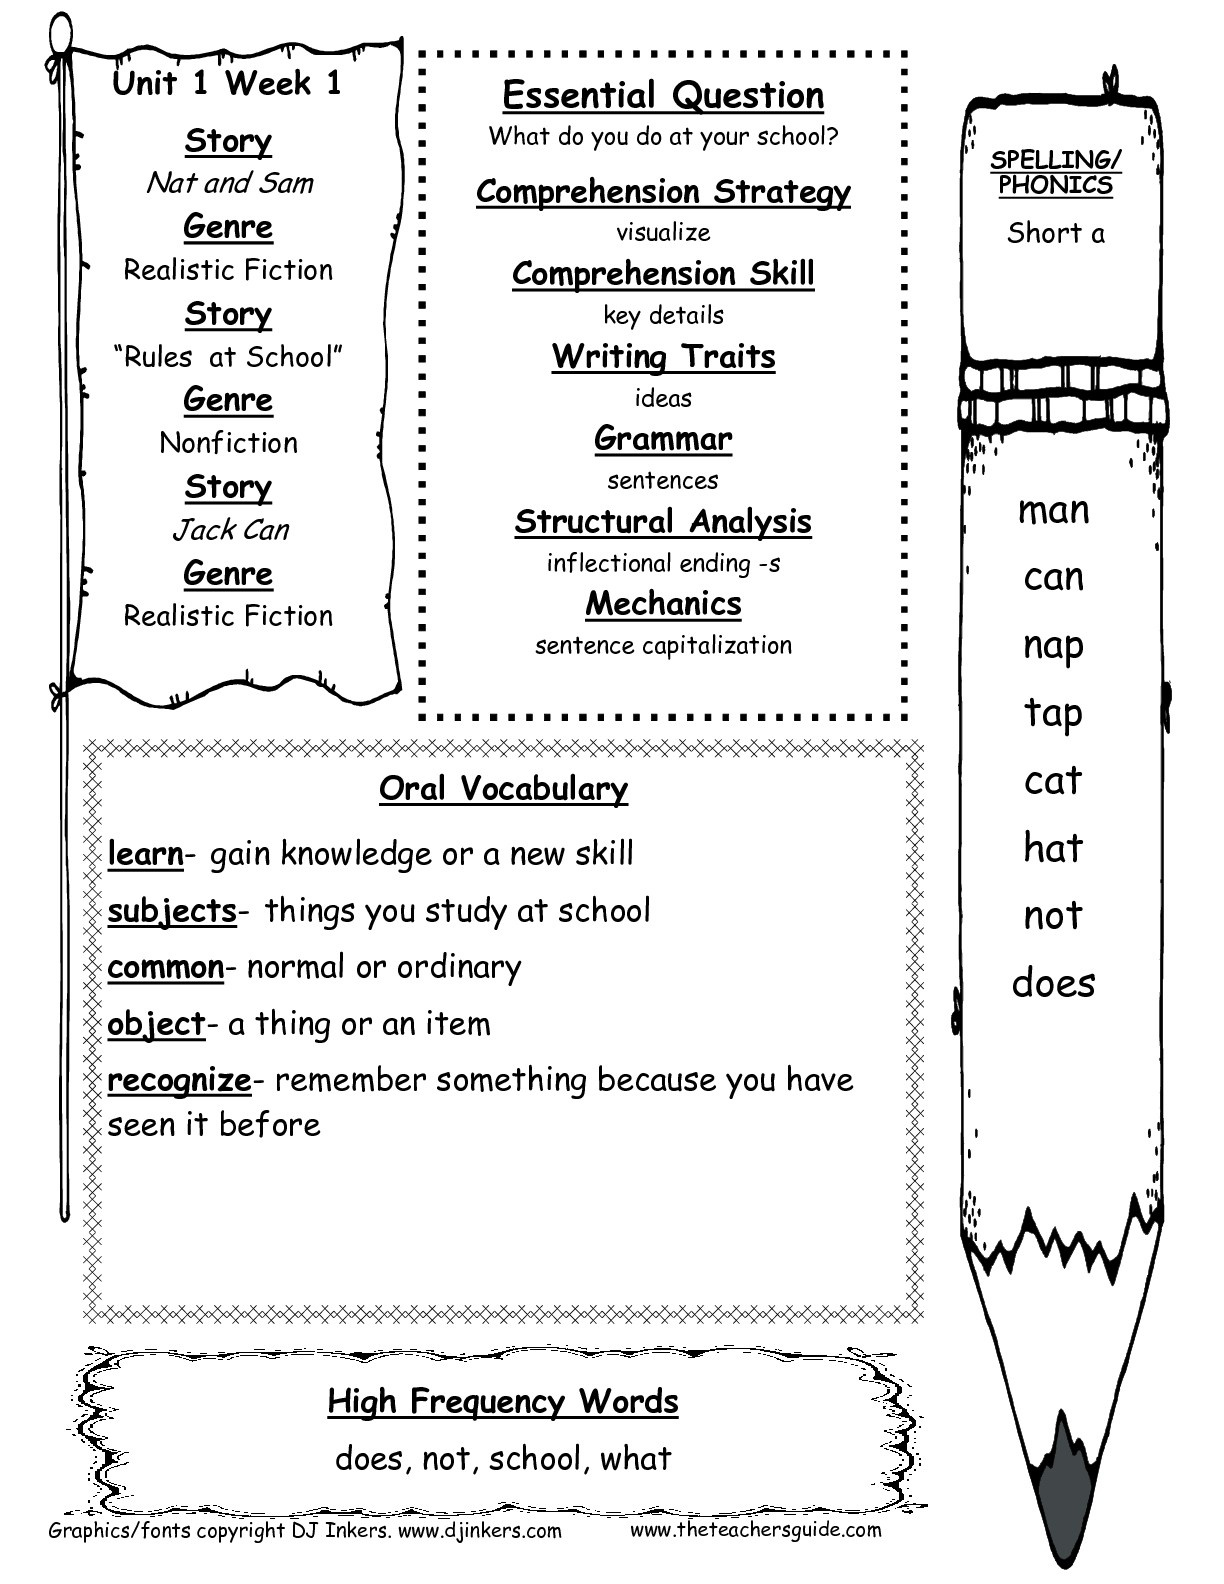 Mcgraw-Hill Wonders First Grade Resources And Printouts - Free Printable Story Books For Grade 1